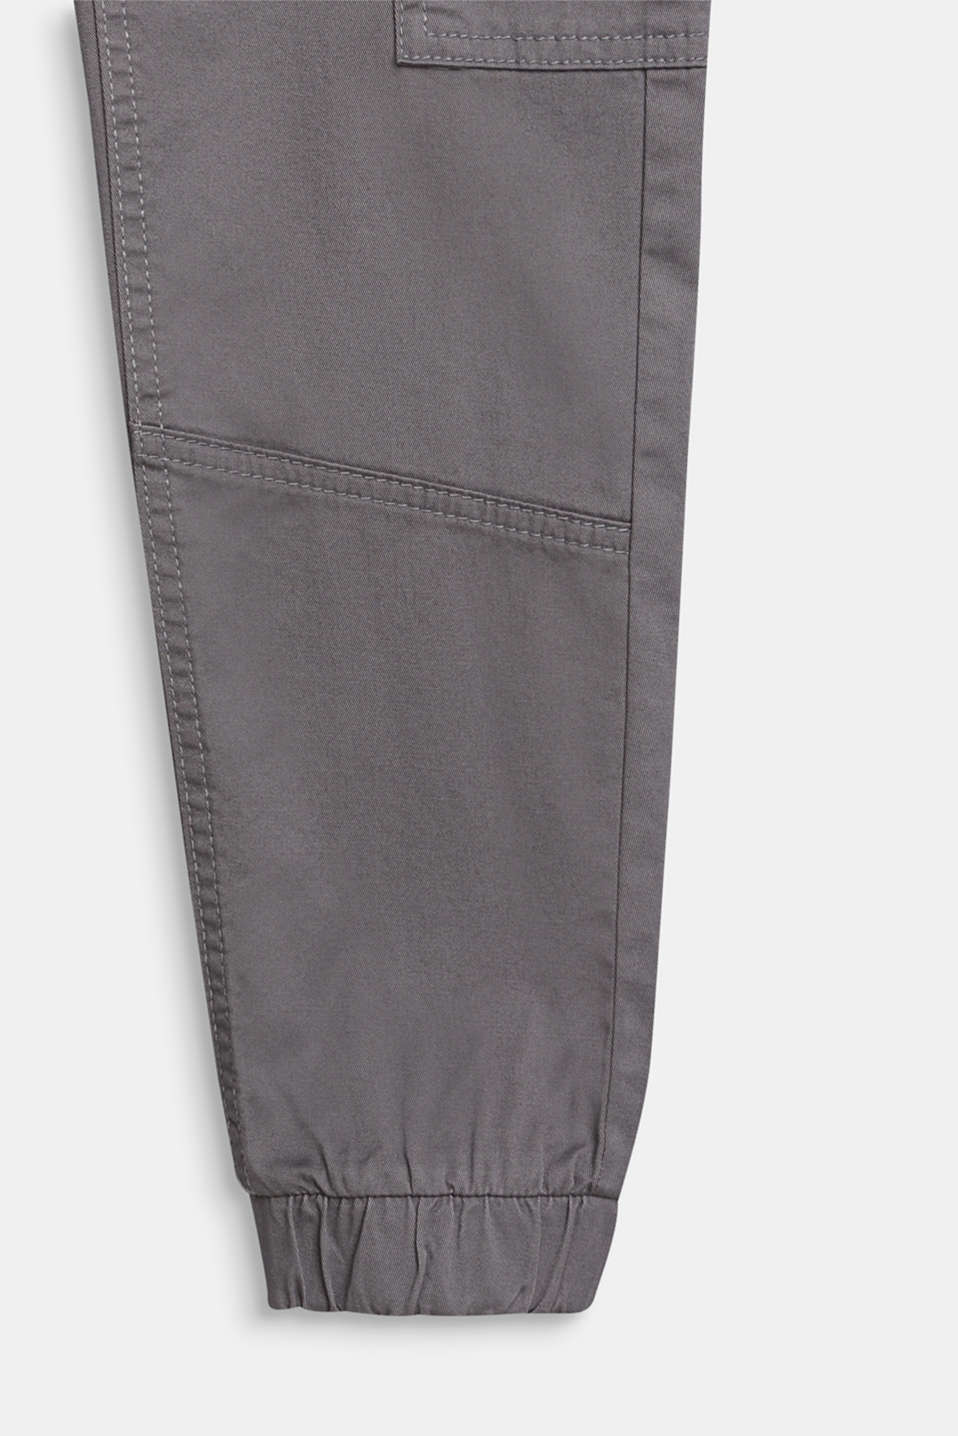 Stretch cotton cargo trousers, adjustable waistband, LCGREY, detail image number 2